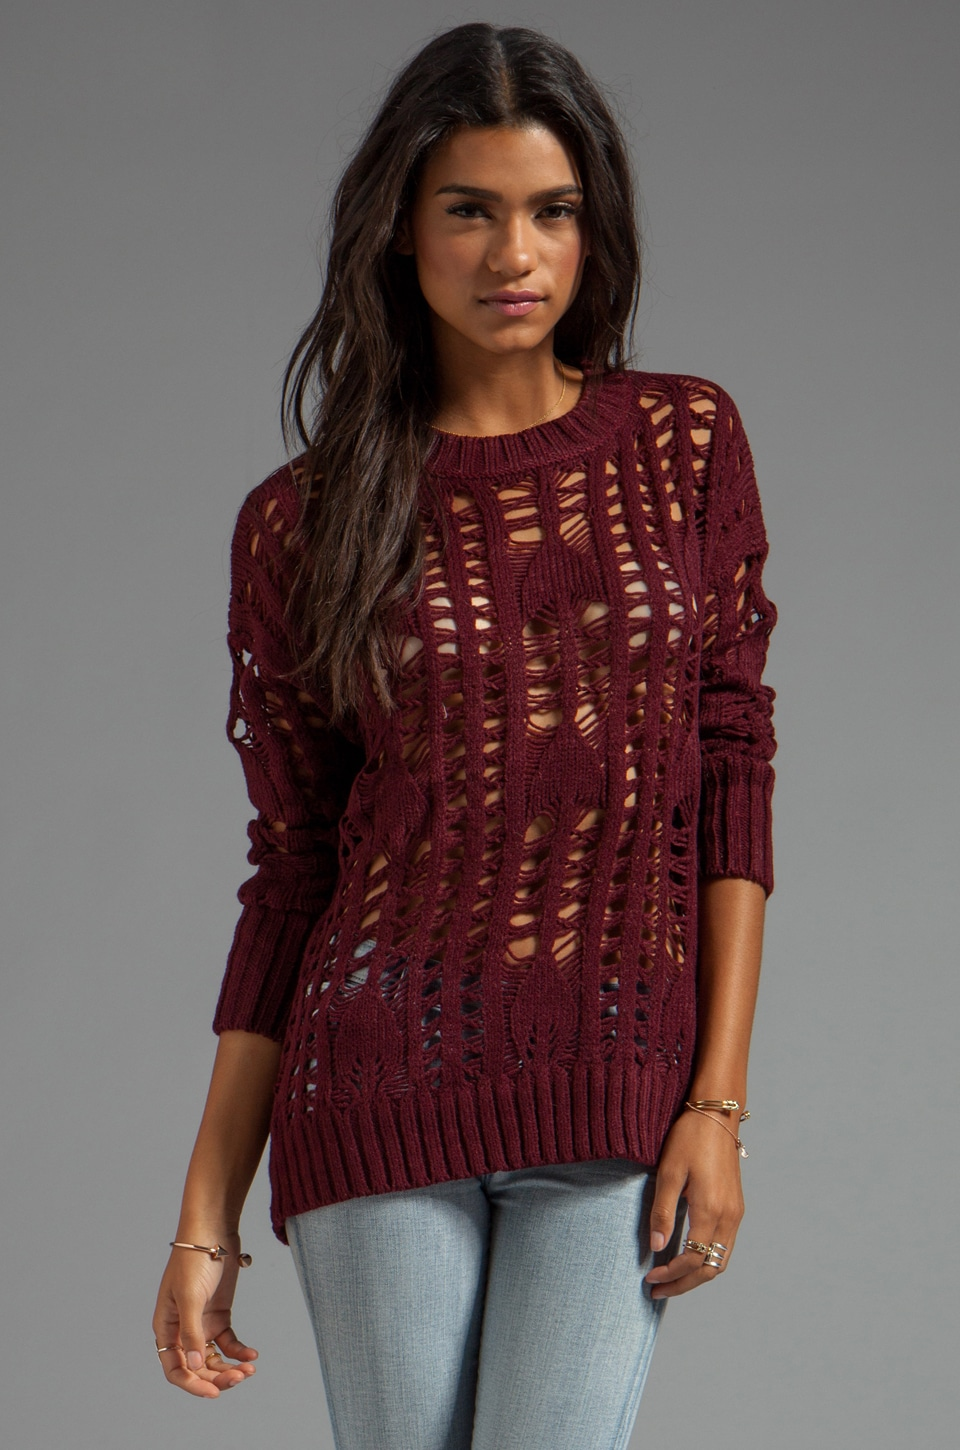 HEARTLOOM Samara Knitted Sweater in Merlot